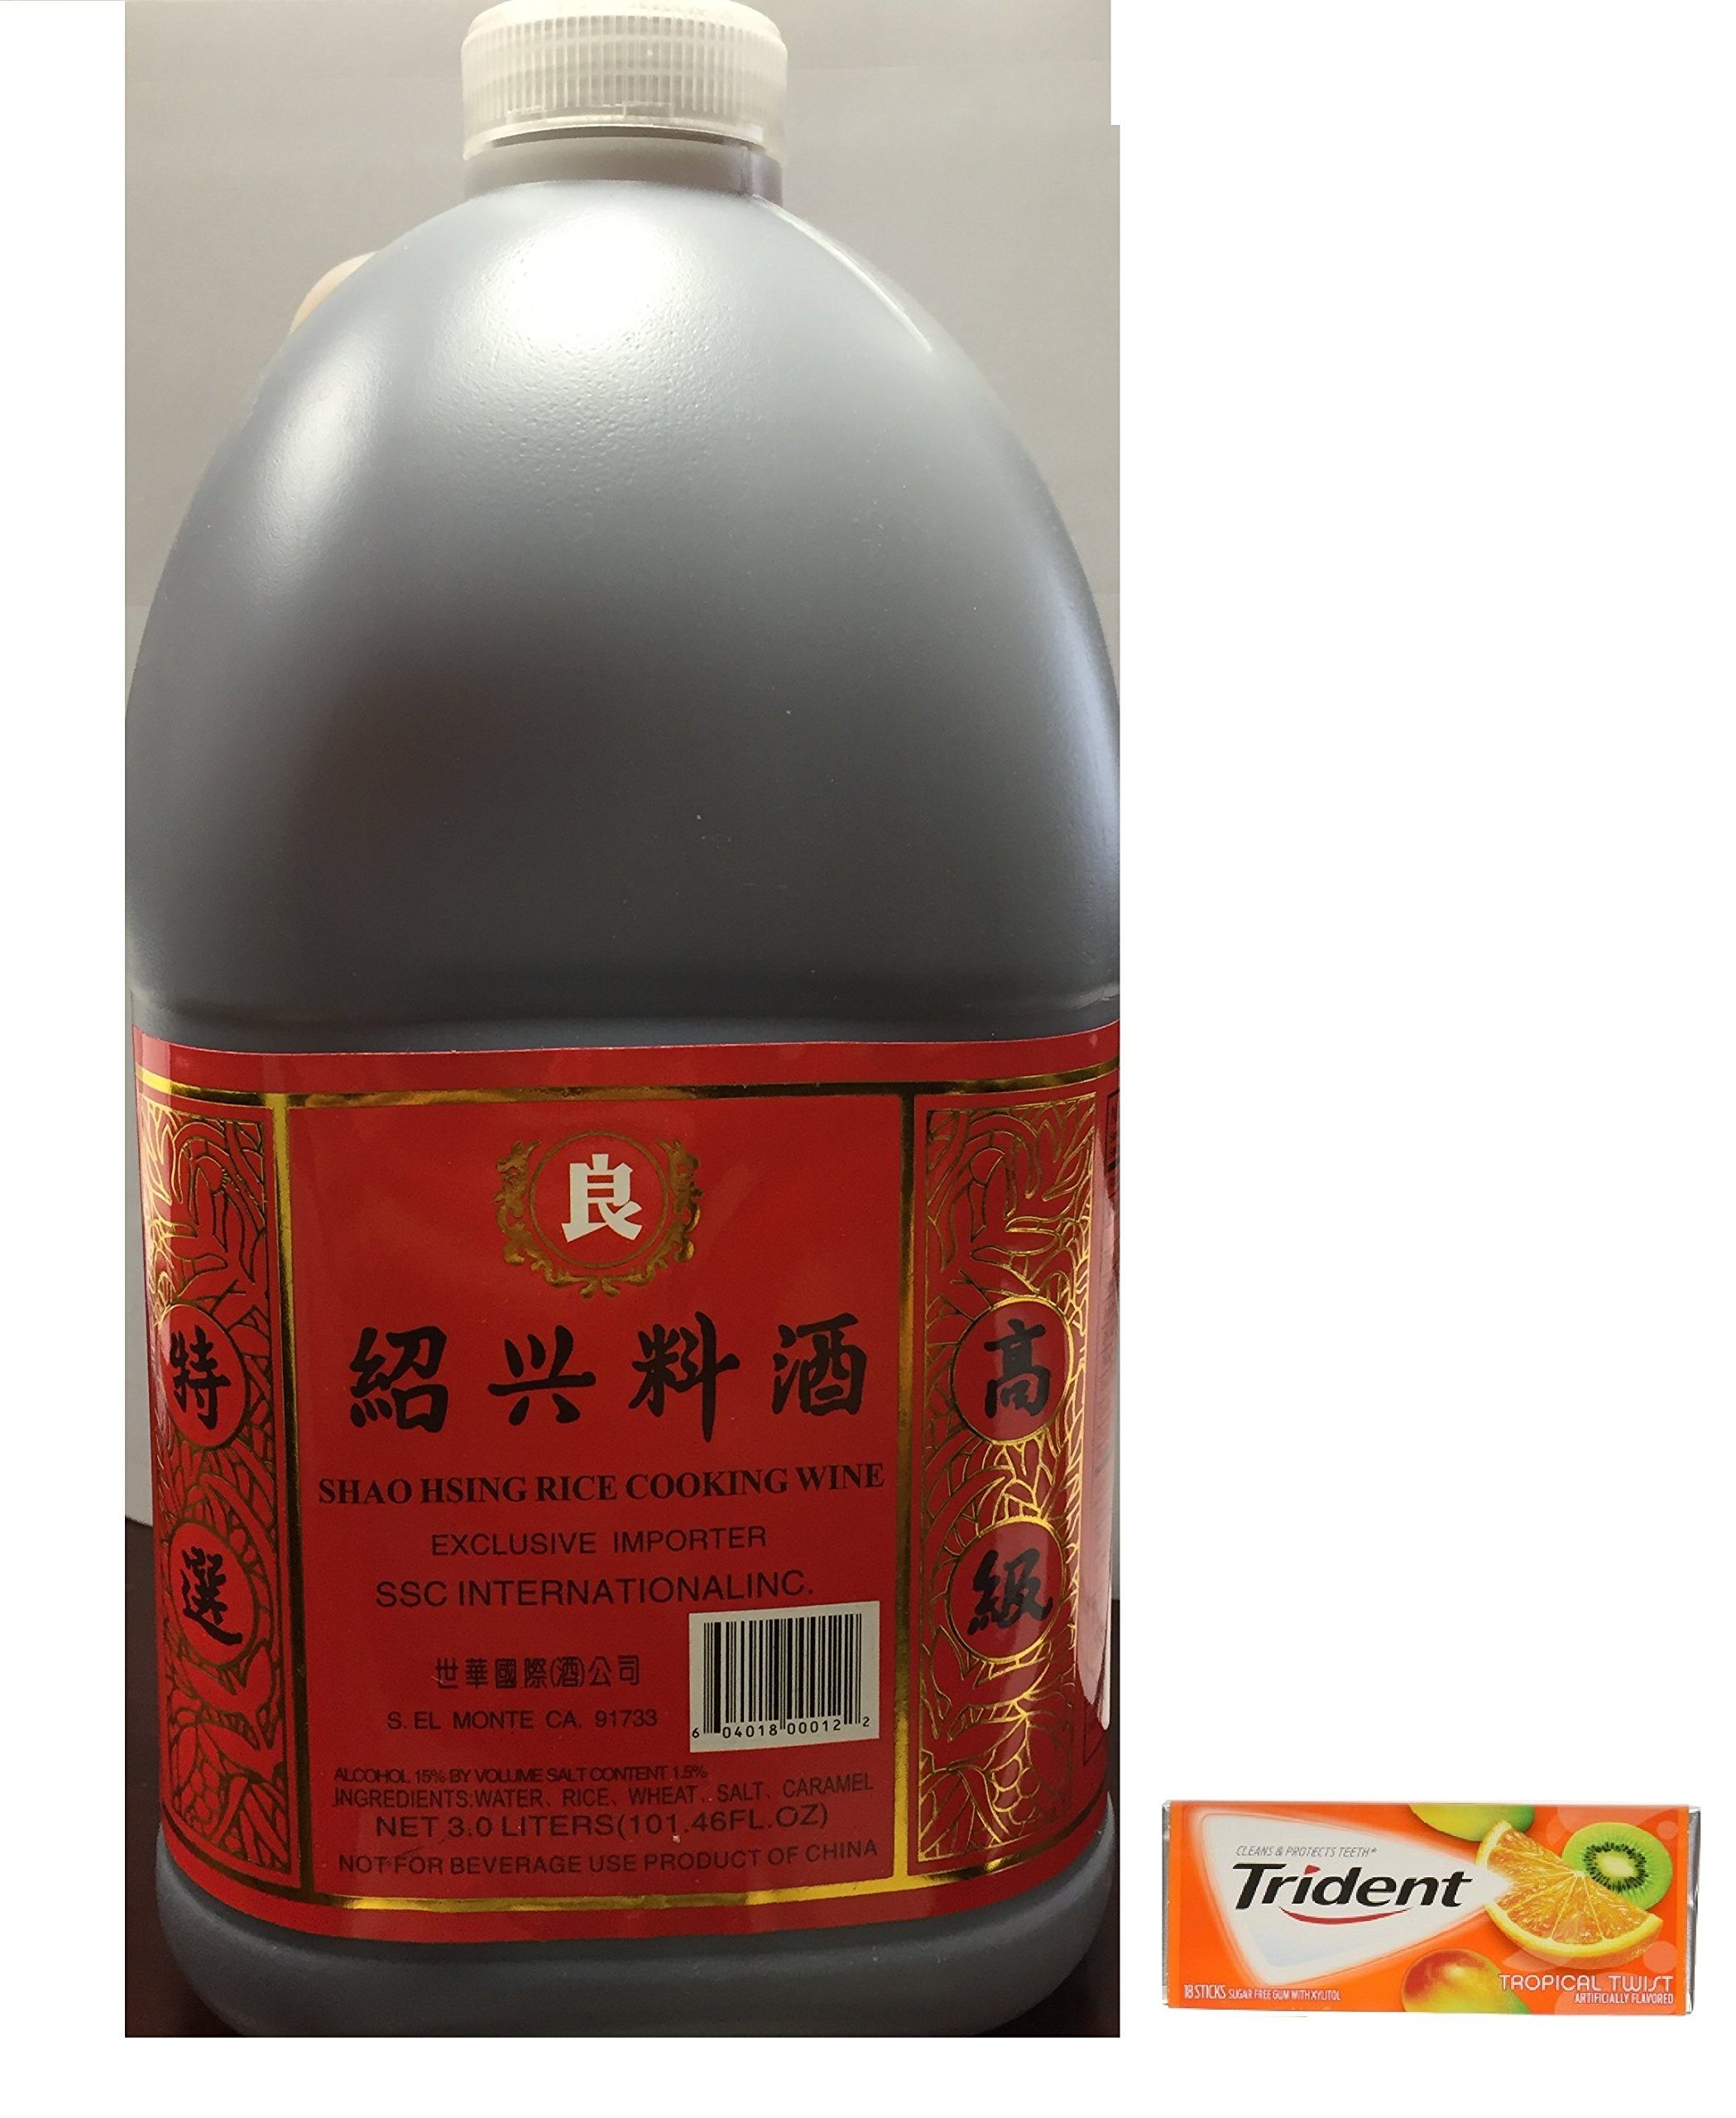 SHAOHSING RICE COOKING WINE 3.0 LITERS(101.46FL OZ) plus a Free Gift Trident Gum, Tropical Twist Flavor by Shaohsing